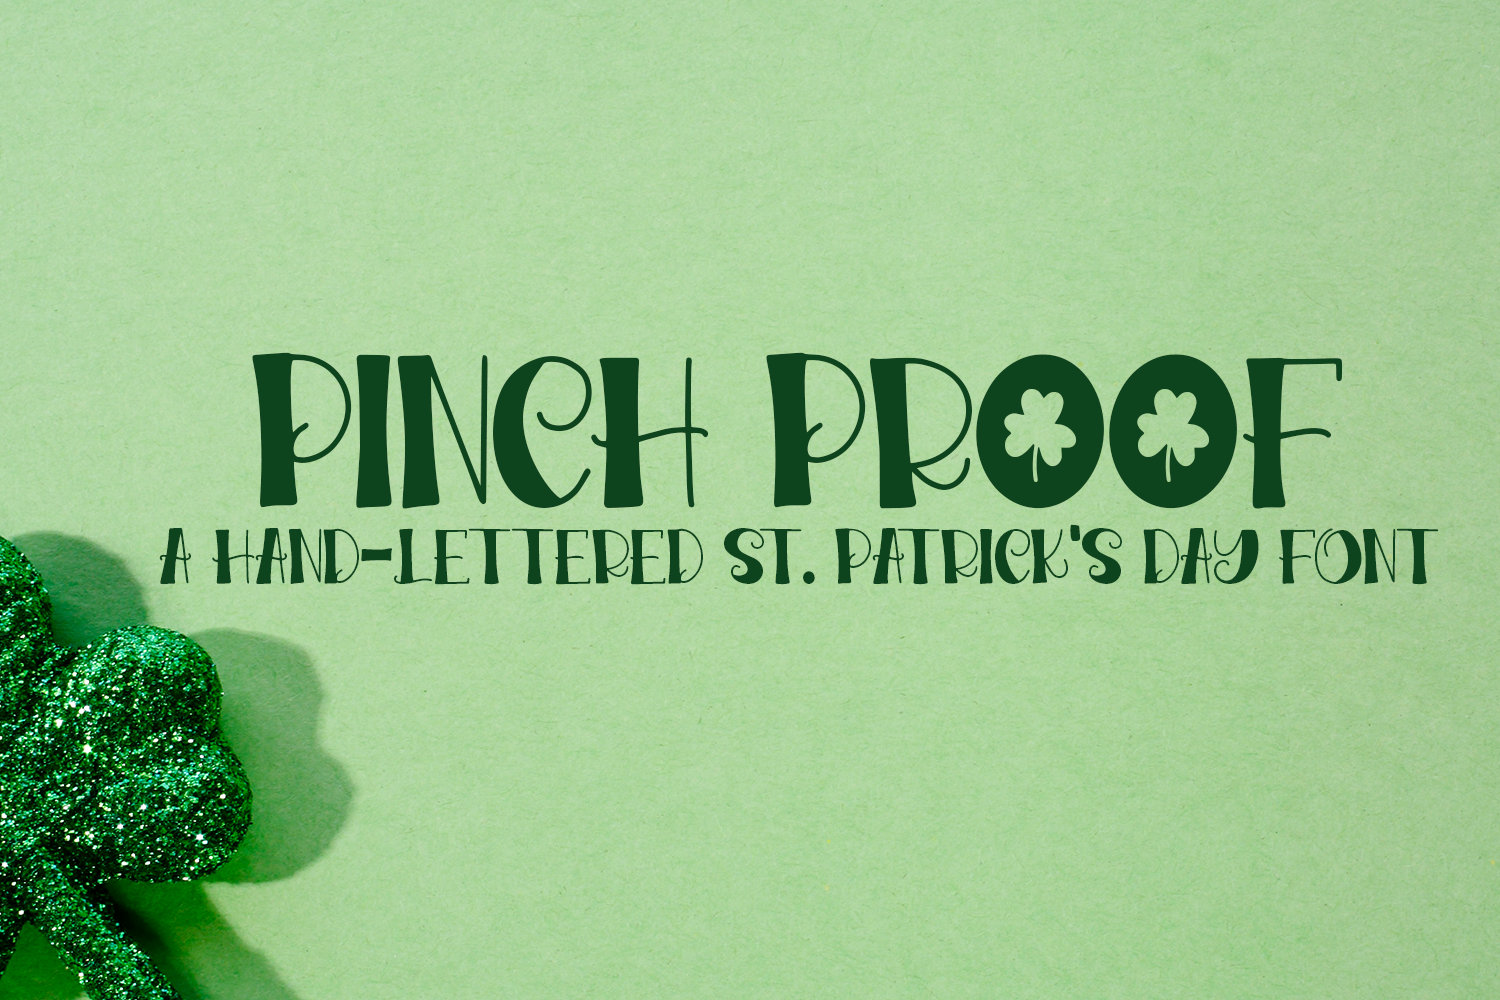 Pinch Proof - A Hand-Lettered St. Patrick's Day Font example image 1